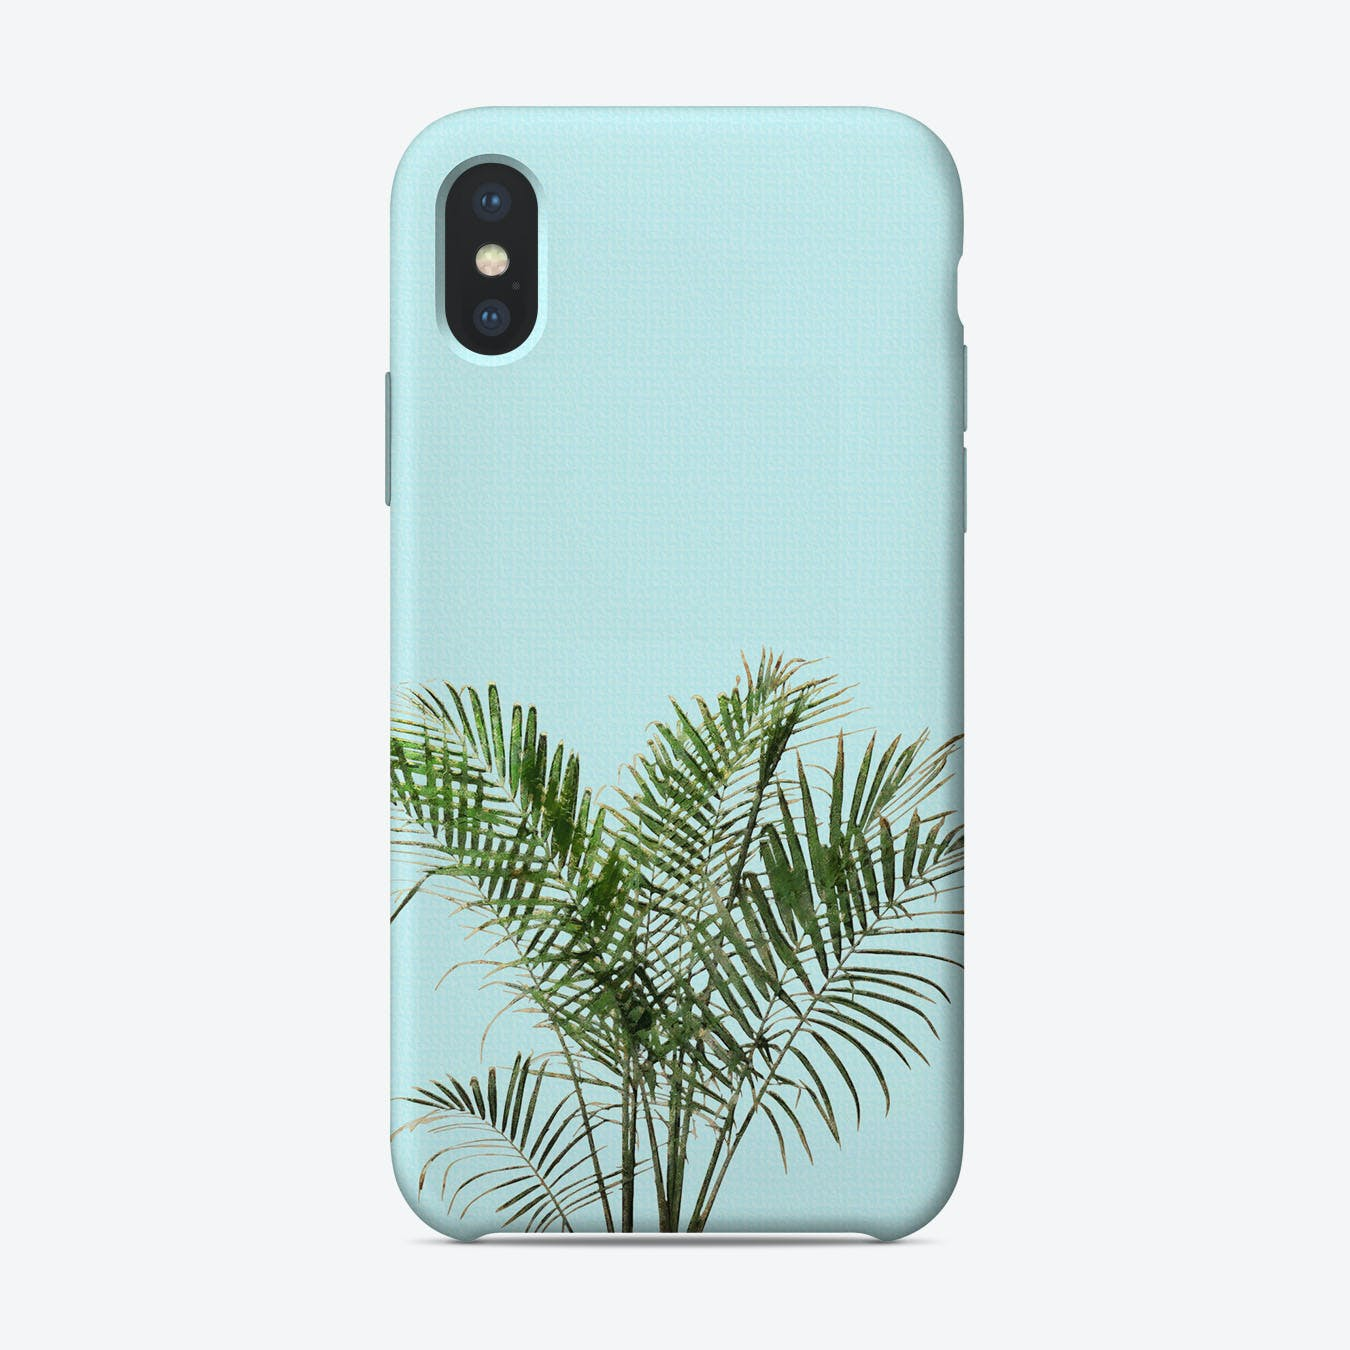 Abstract XII iPhone 11 case